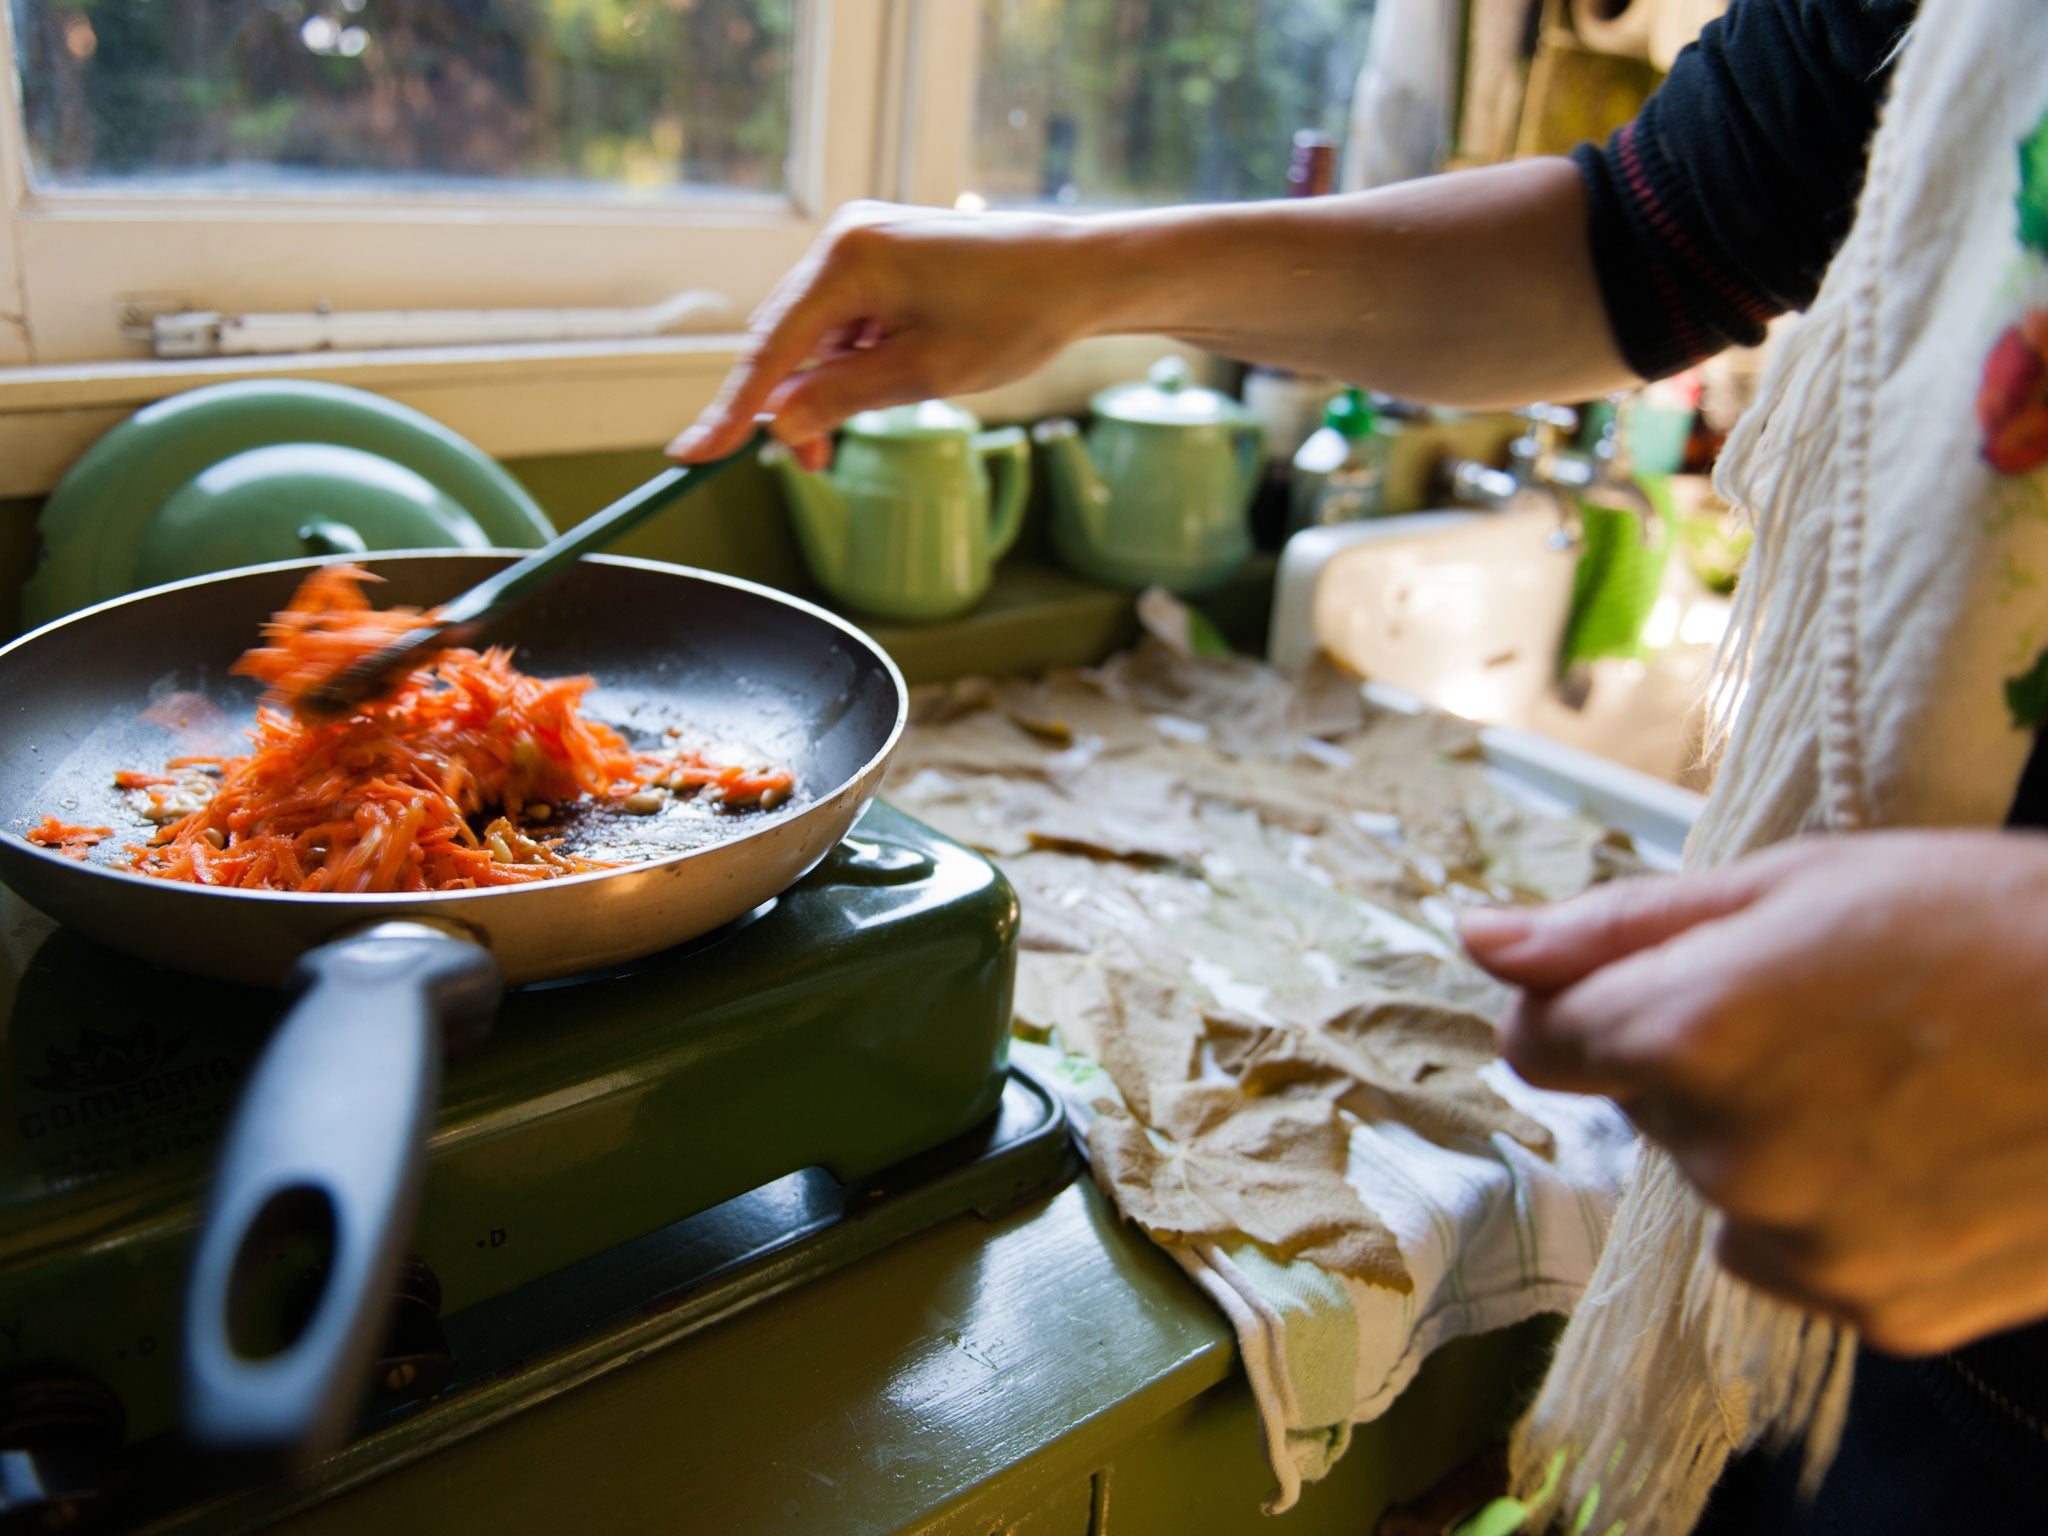 Mother in wales posts gumtree ad offering free home cooked meals for families living on benefits - Home cooking ...